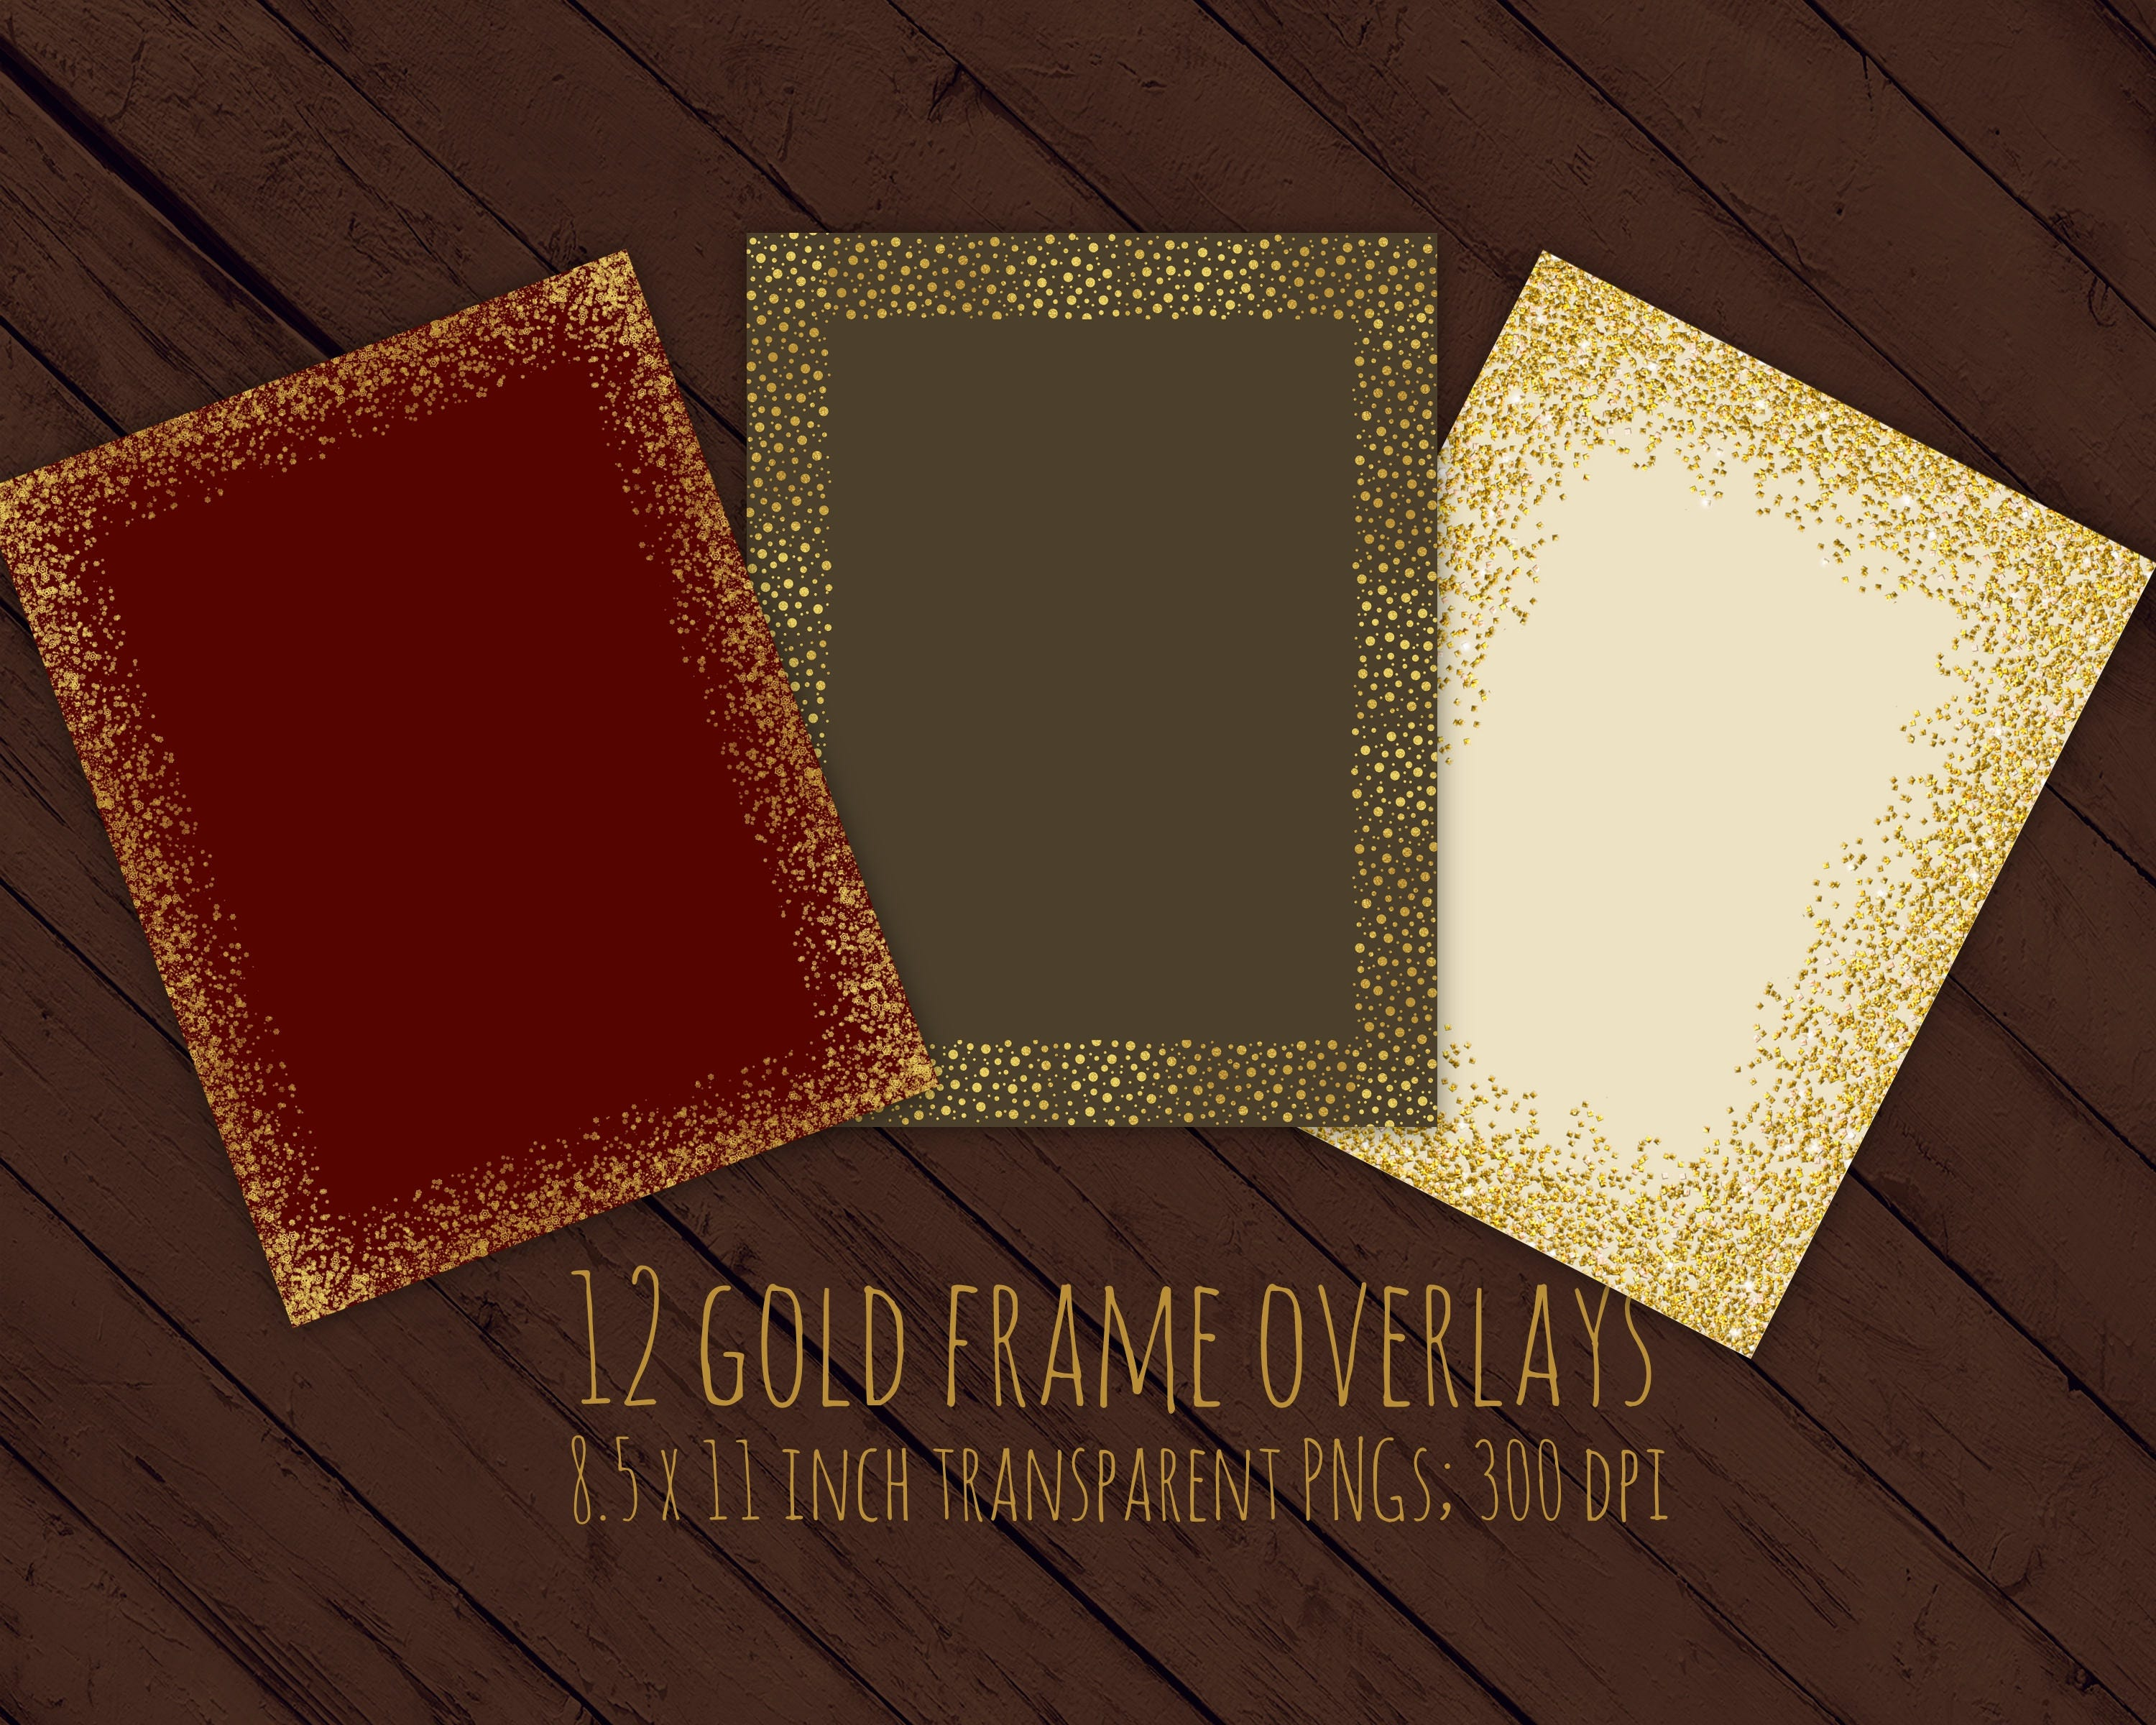 Gold Glitter Frames Overlays 85 X 11 Inches Christmas Etsy